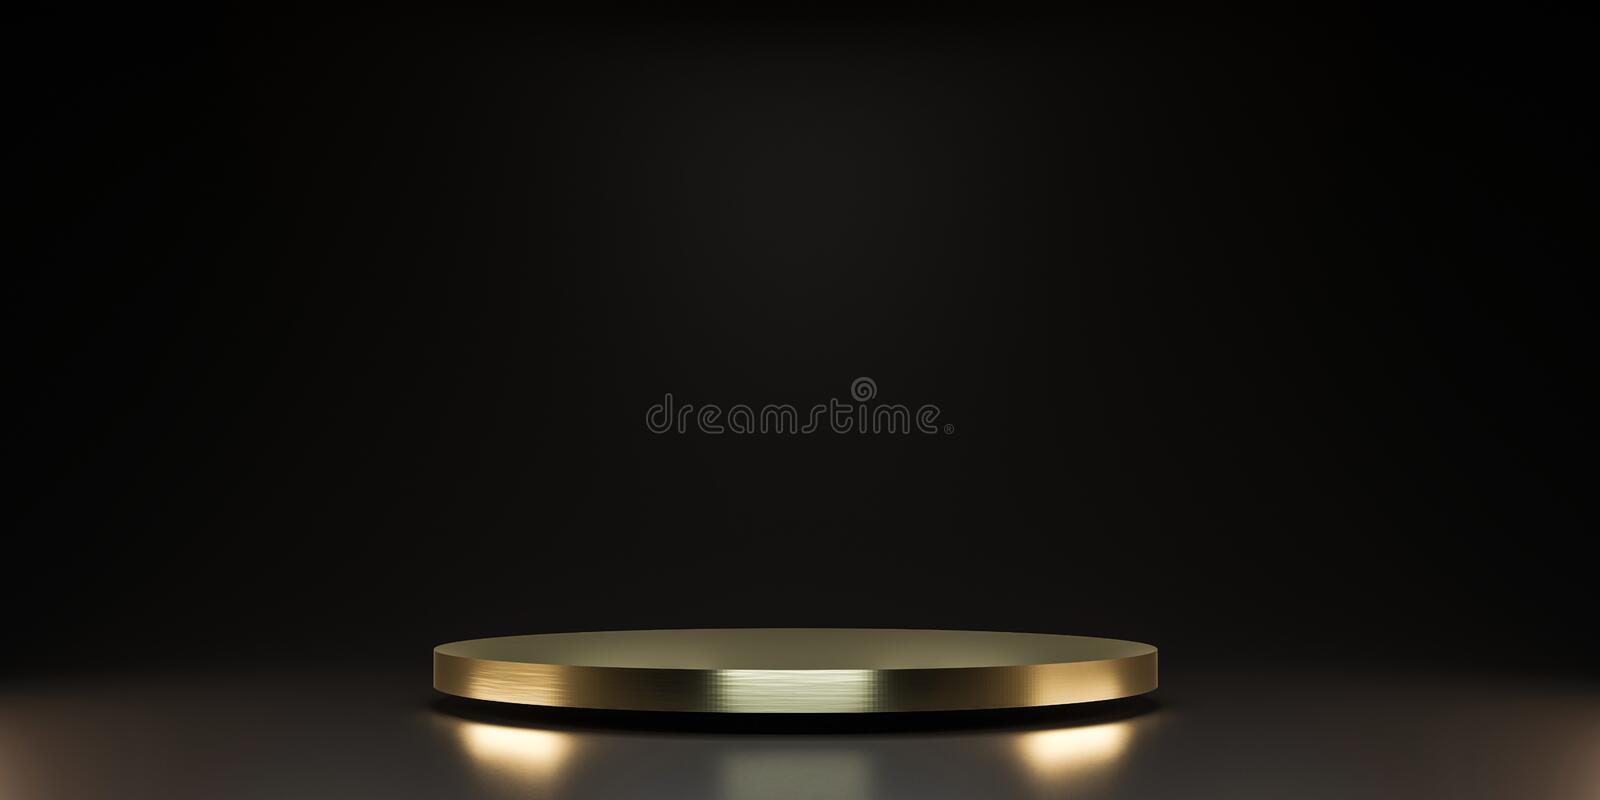 Golden pedestal of platform display with luxury stand podium on dark room background. Blank Exhibition or empty product shelf. 3D stock illustration